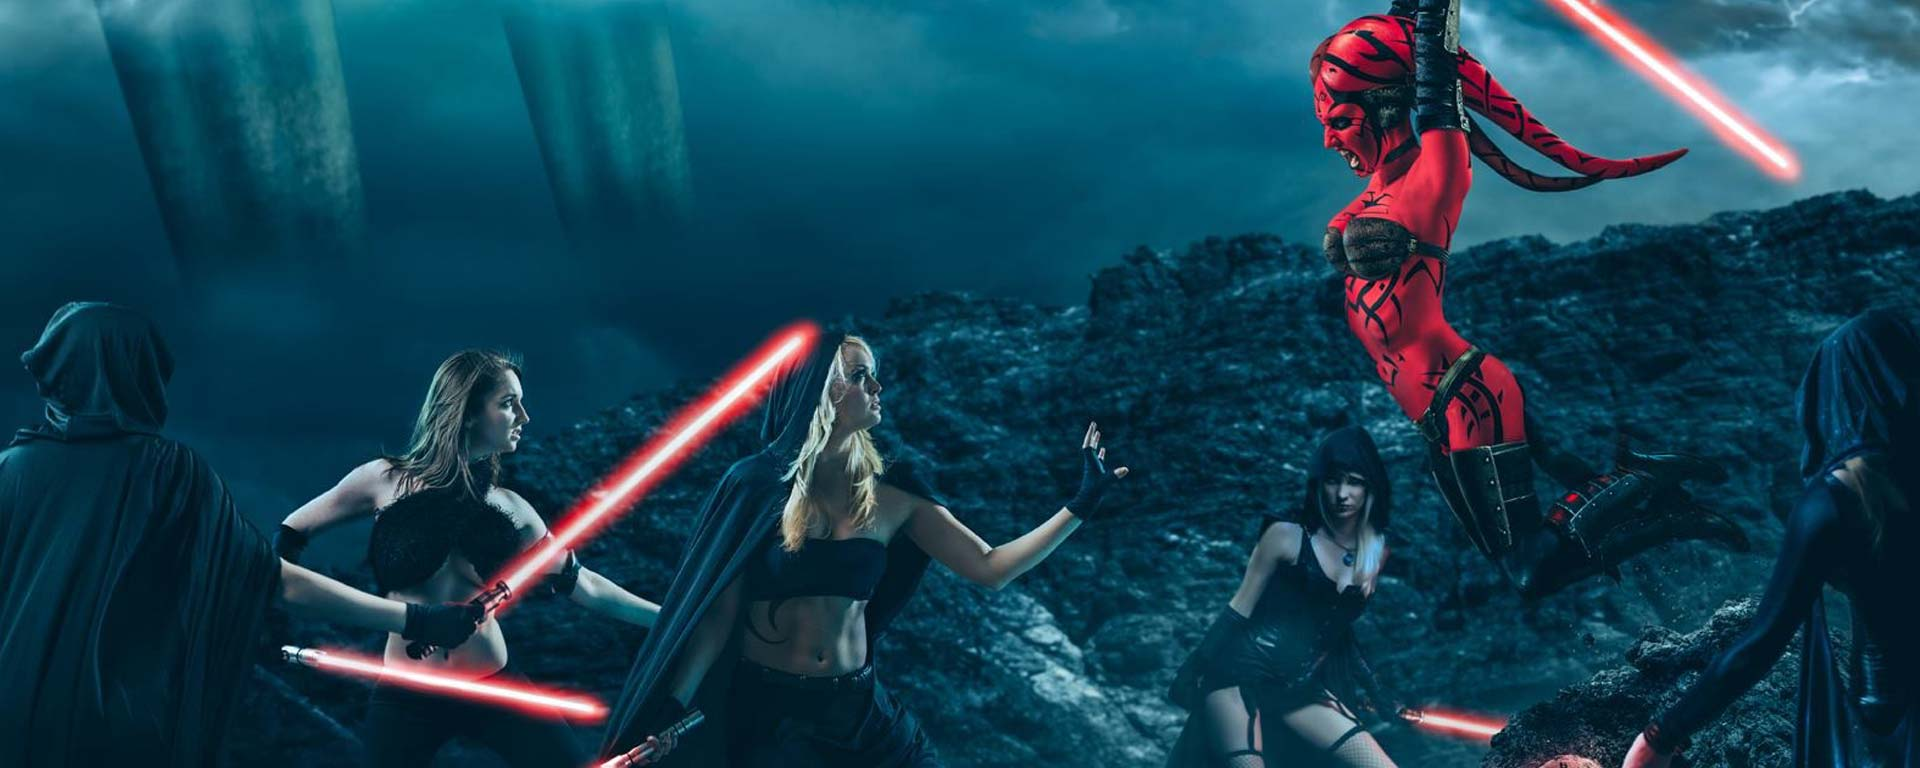 Featured Sexy StarWars Costumes and Clothing Roundup